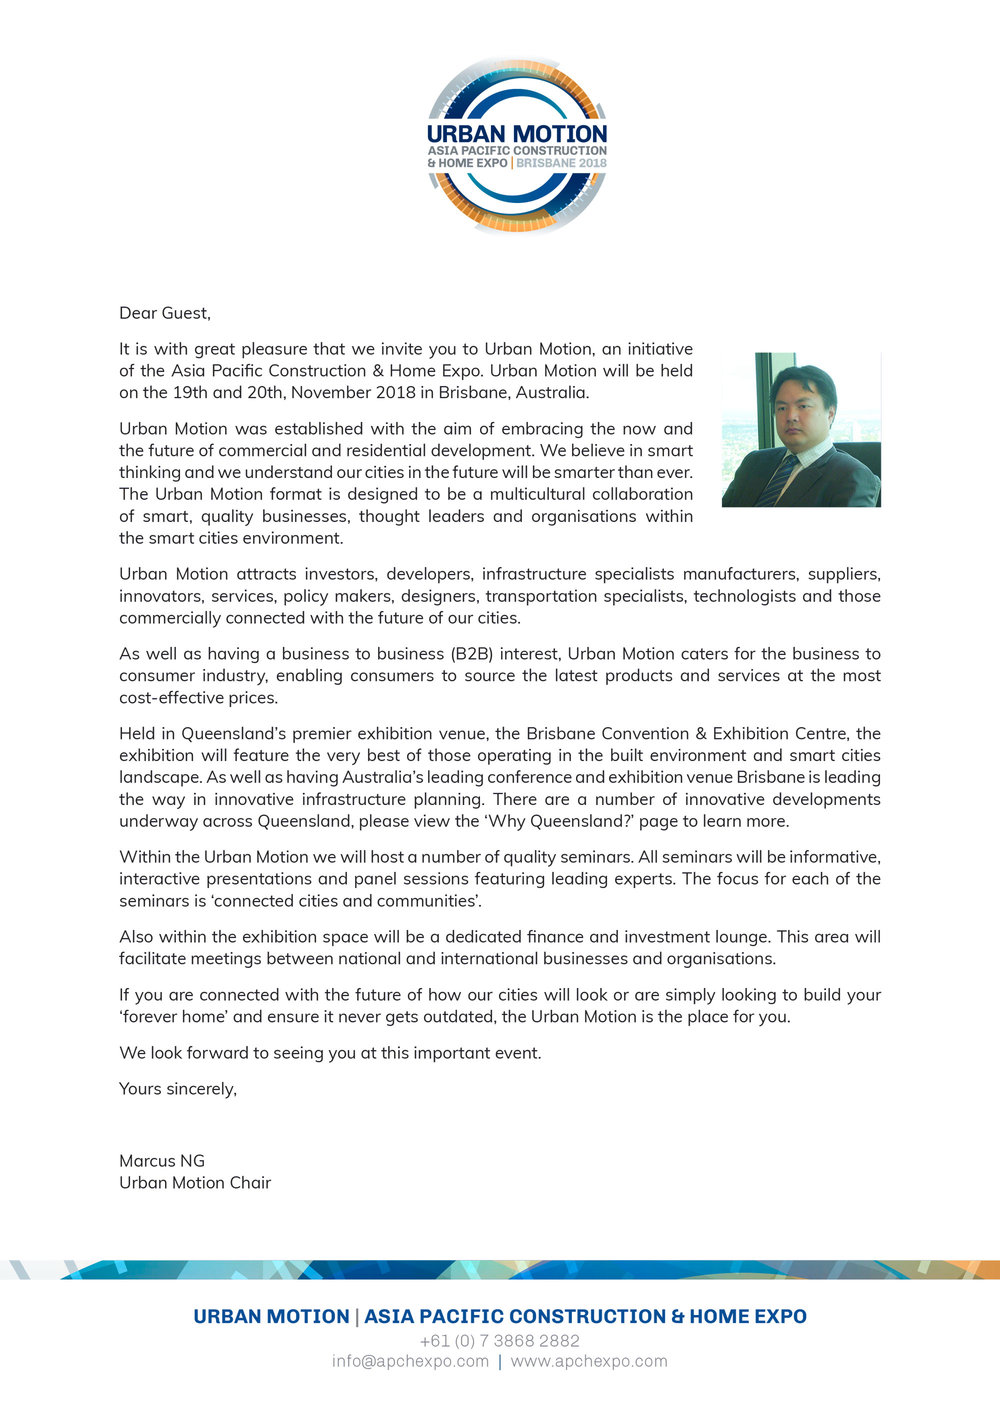 Letter Of Invitation Asia Pacific Construction Home Expo